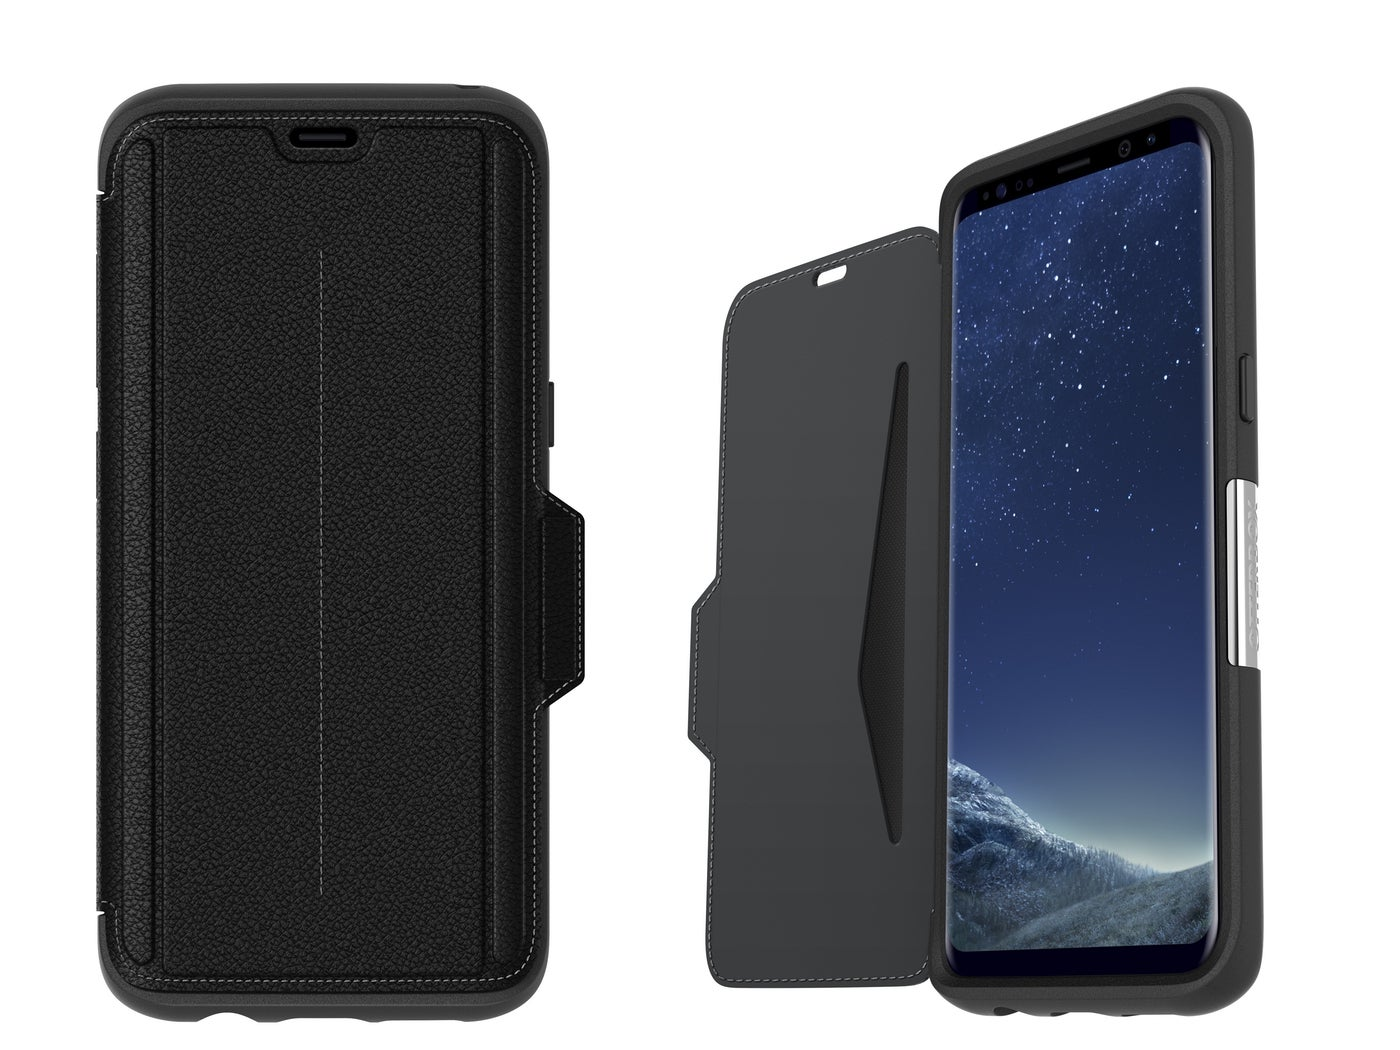 newest 74fd3 81b1b Galaxy S8 and S8+ case roundup: Protect your investment in style ...